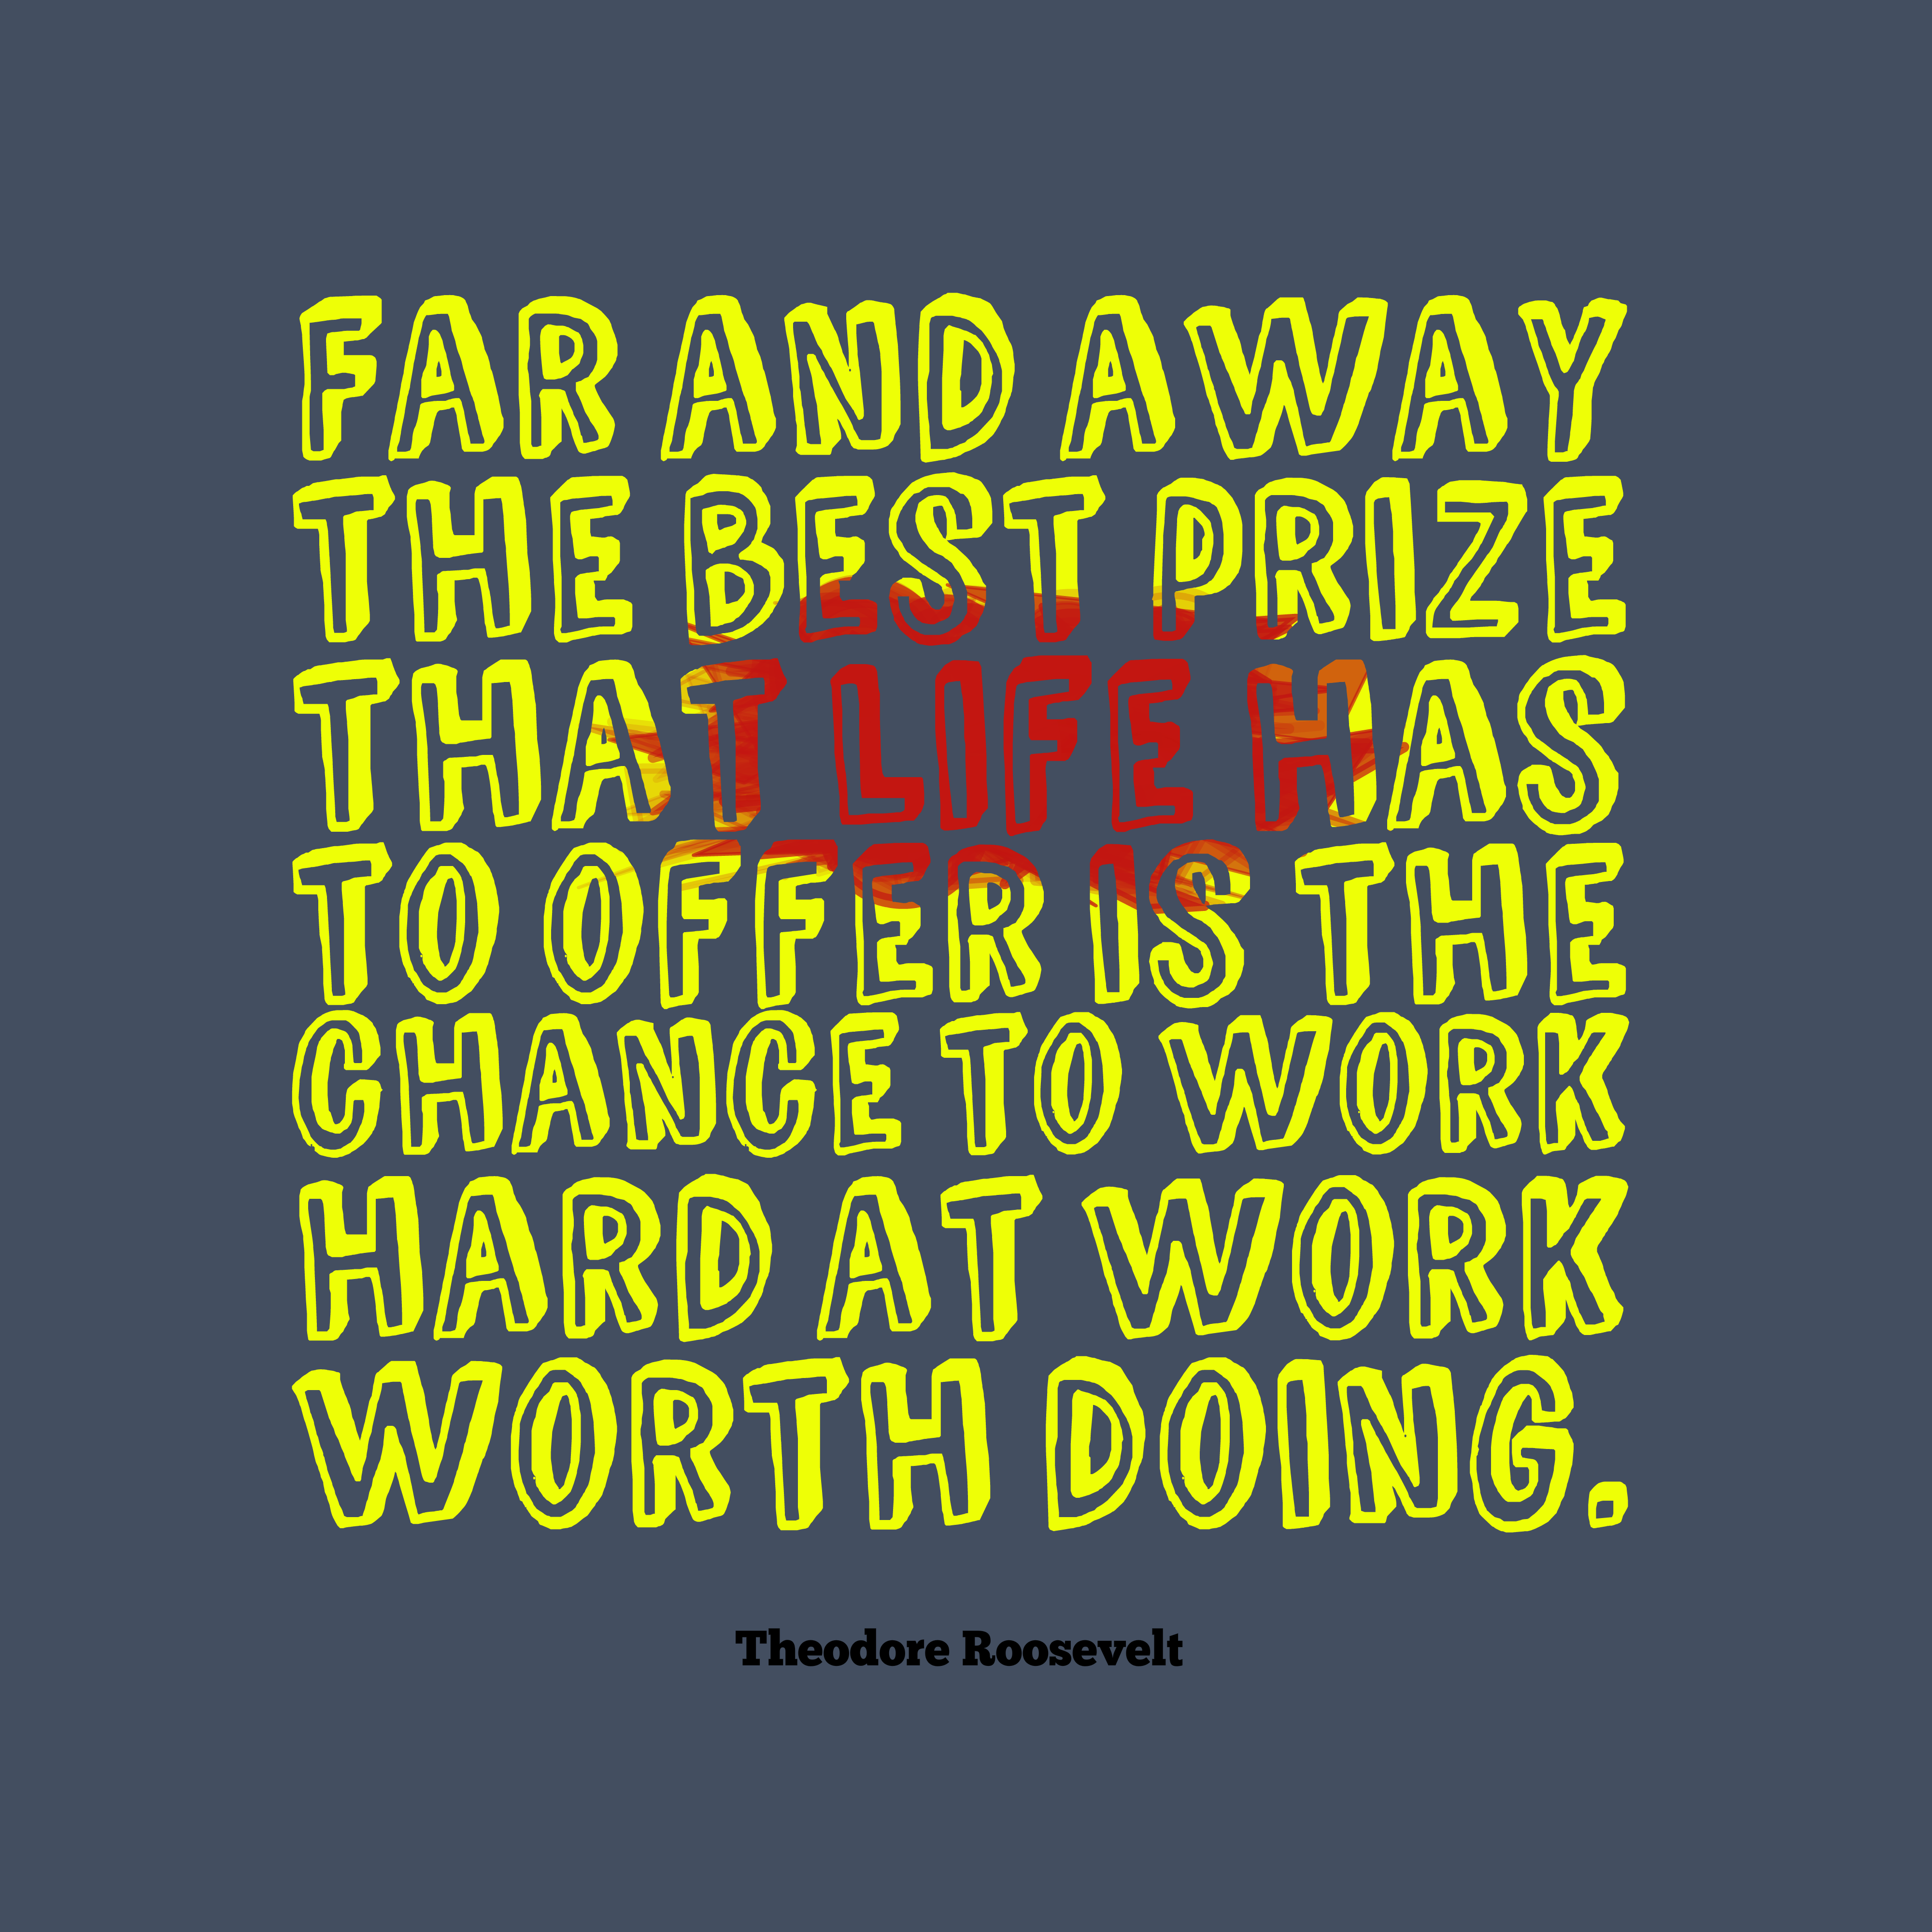 Quotes image of Far and away the best prize that life has to offer is the chance to work hard at work worth doing.